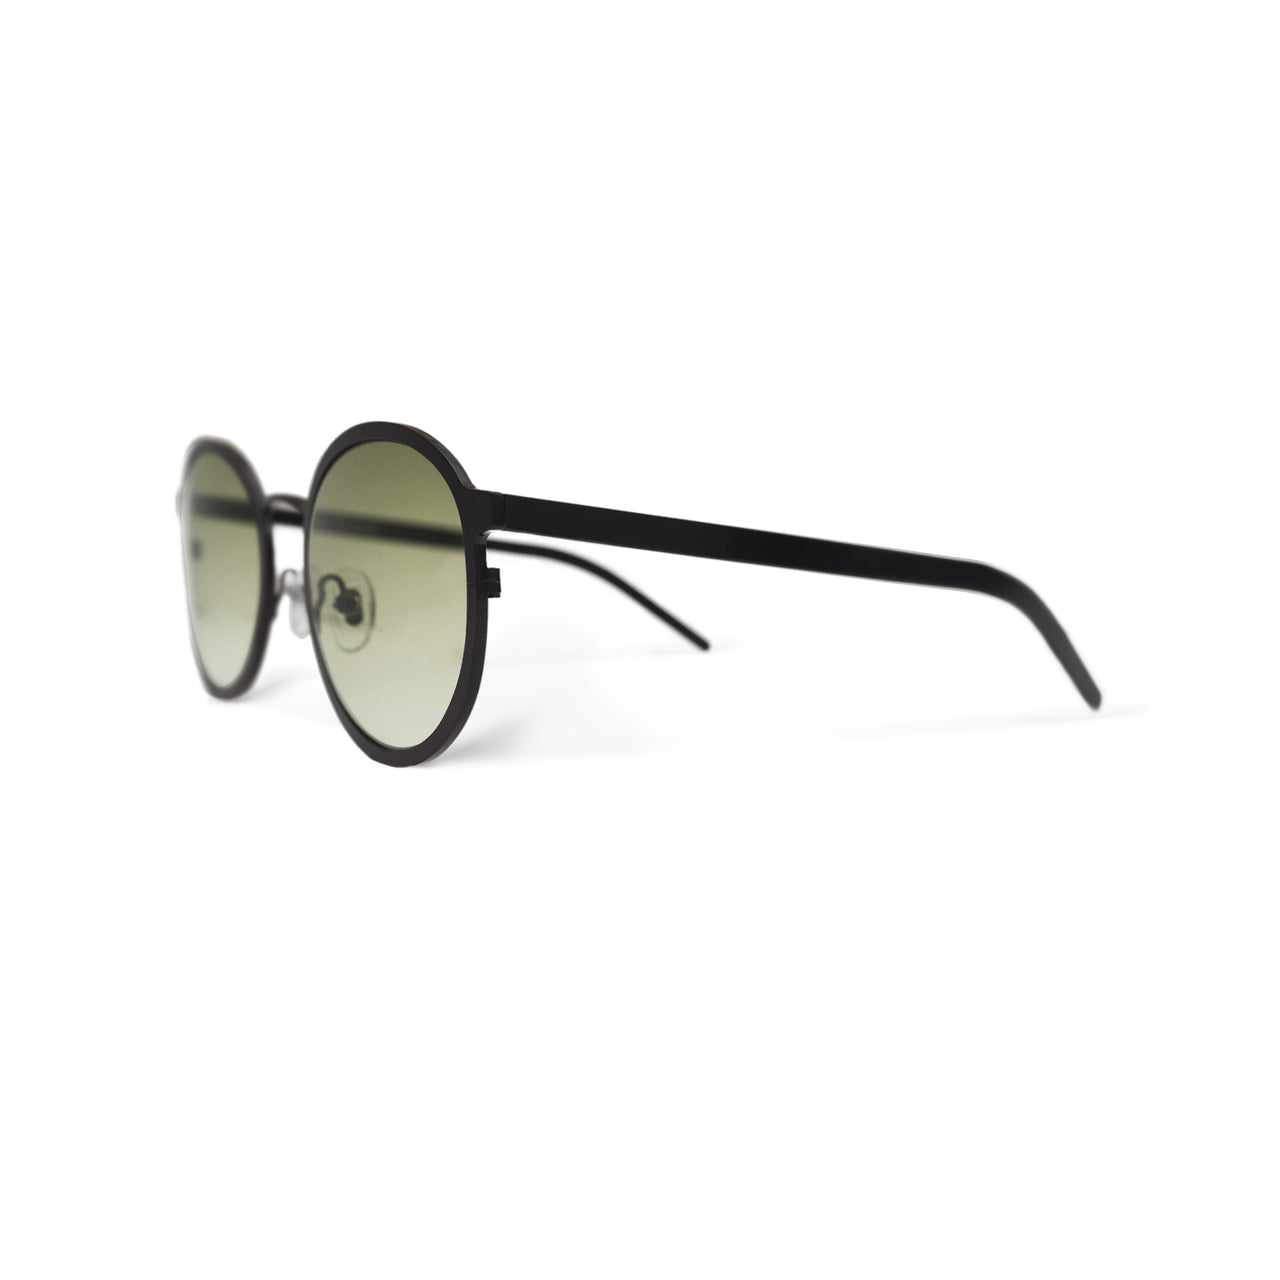 Metal. Matte Black. Olive Lens. - BLYSZAK eyewear eyewear - eyewear, optical, sunglasses